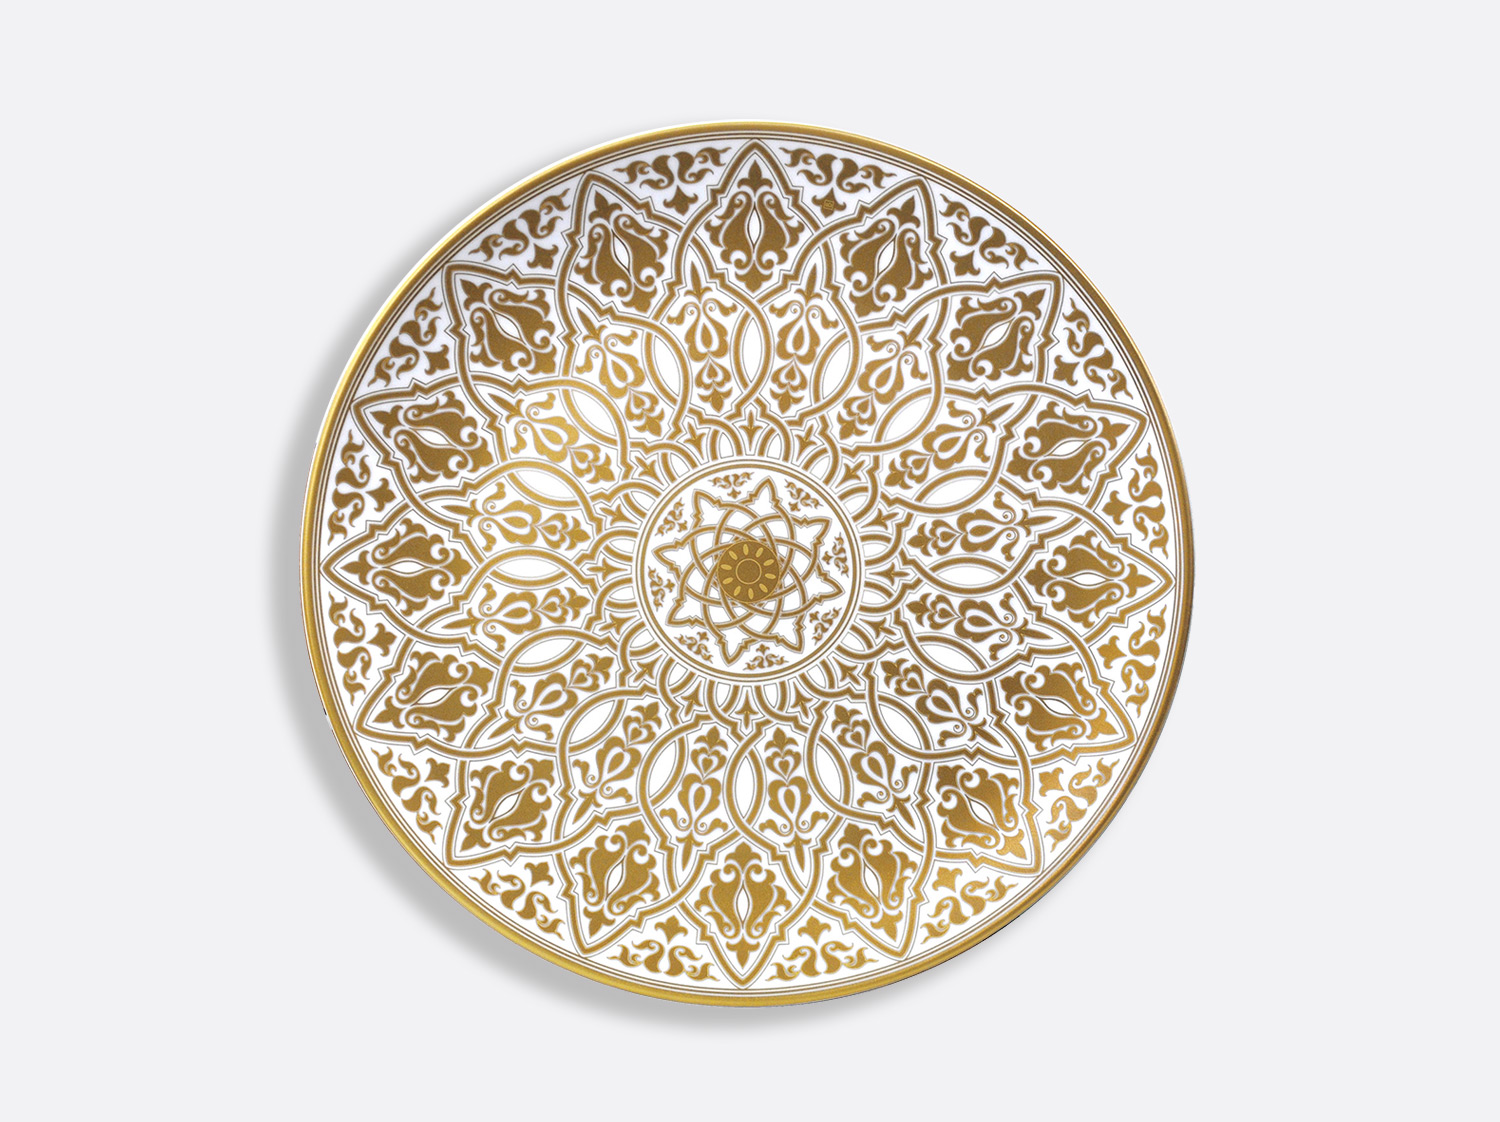 Plat à tarte 32 cm en porcelaine de la collection Venise Bernardaud